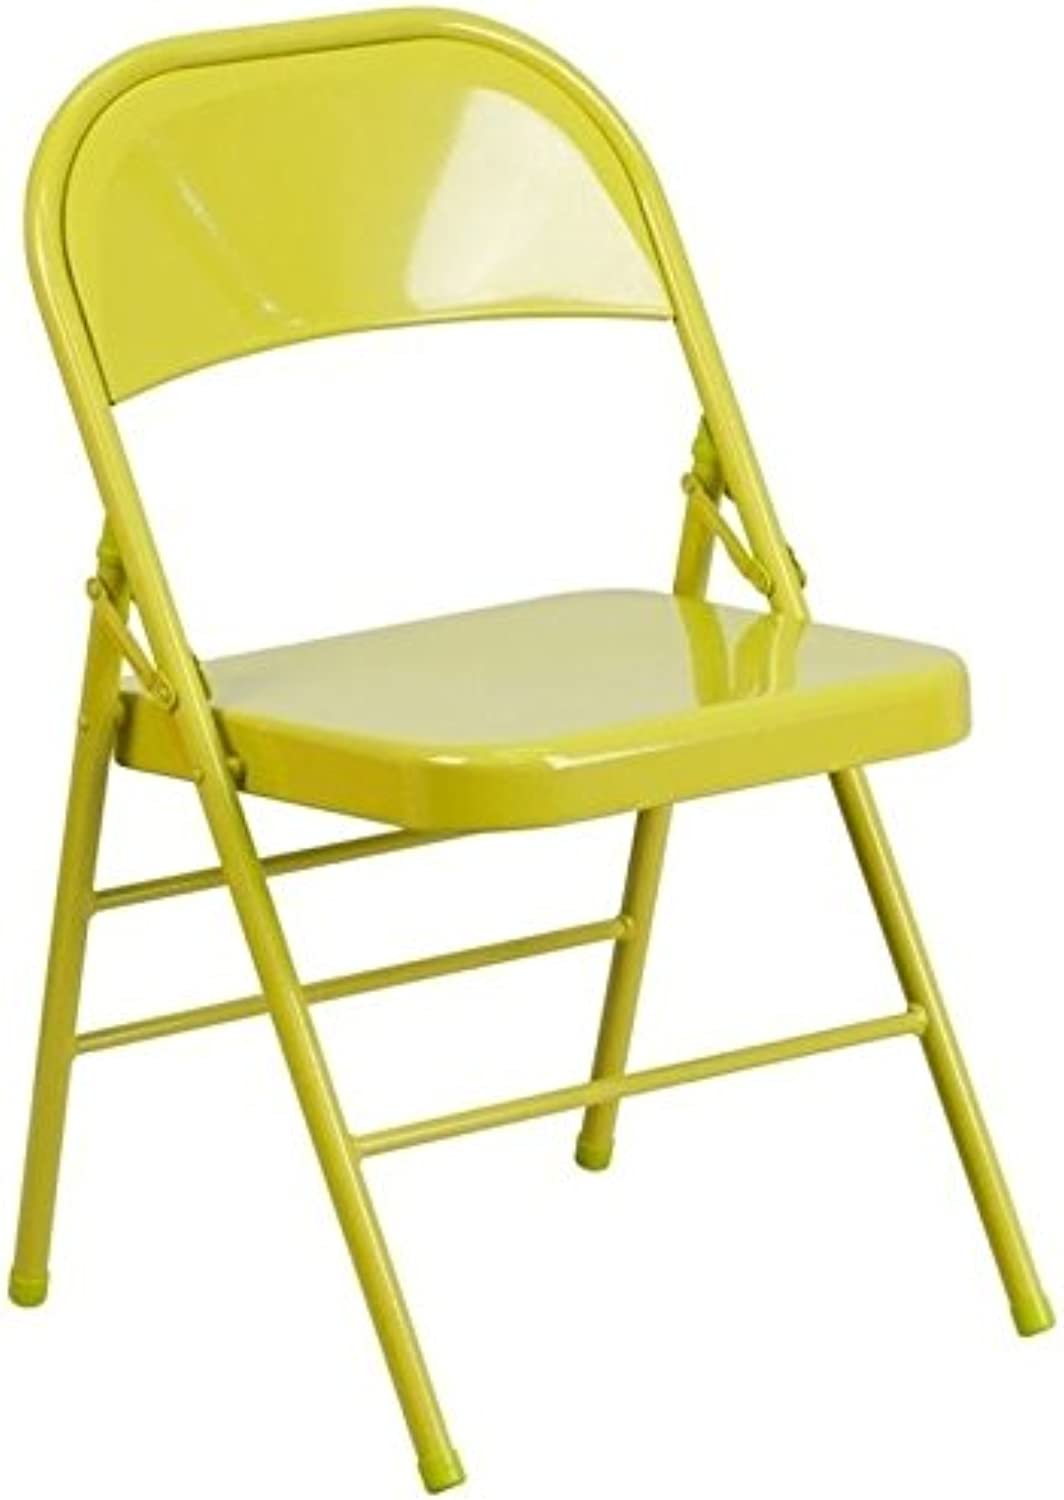 Bowery Hill Metal Folding Chair in Citron